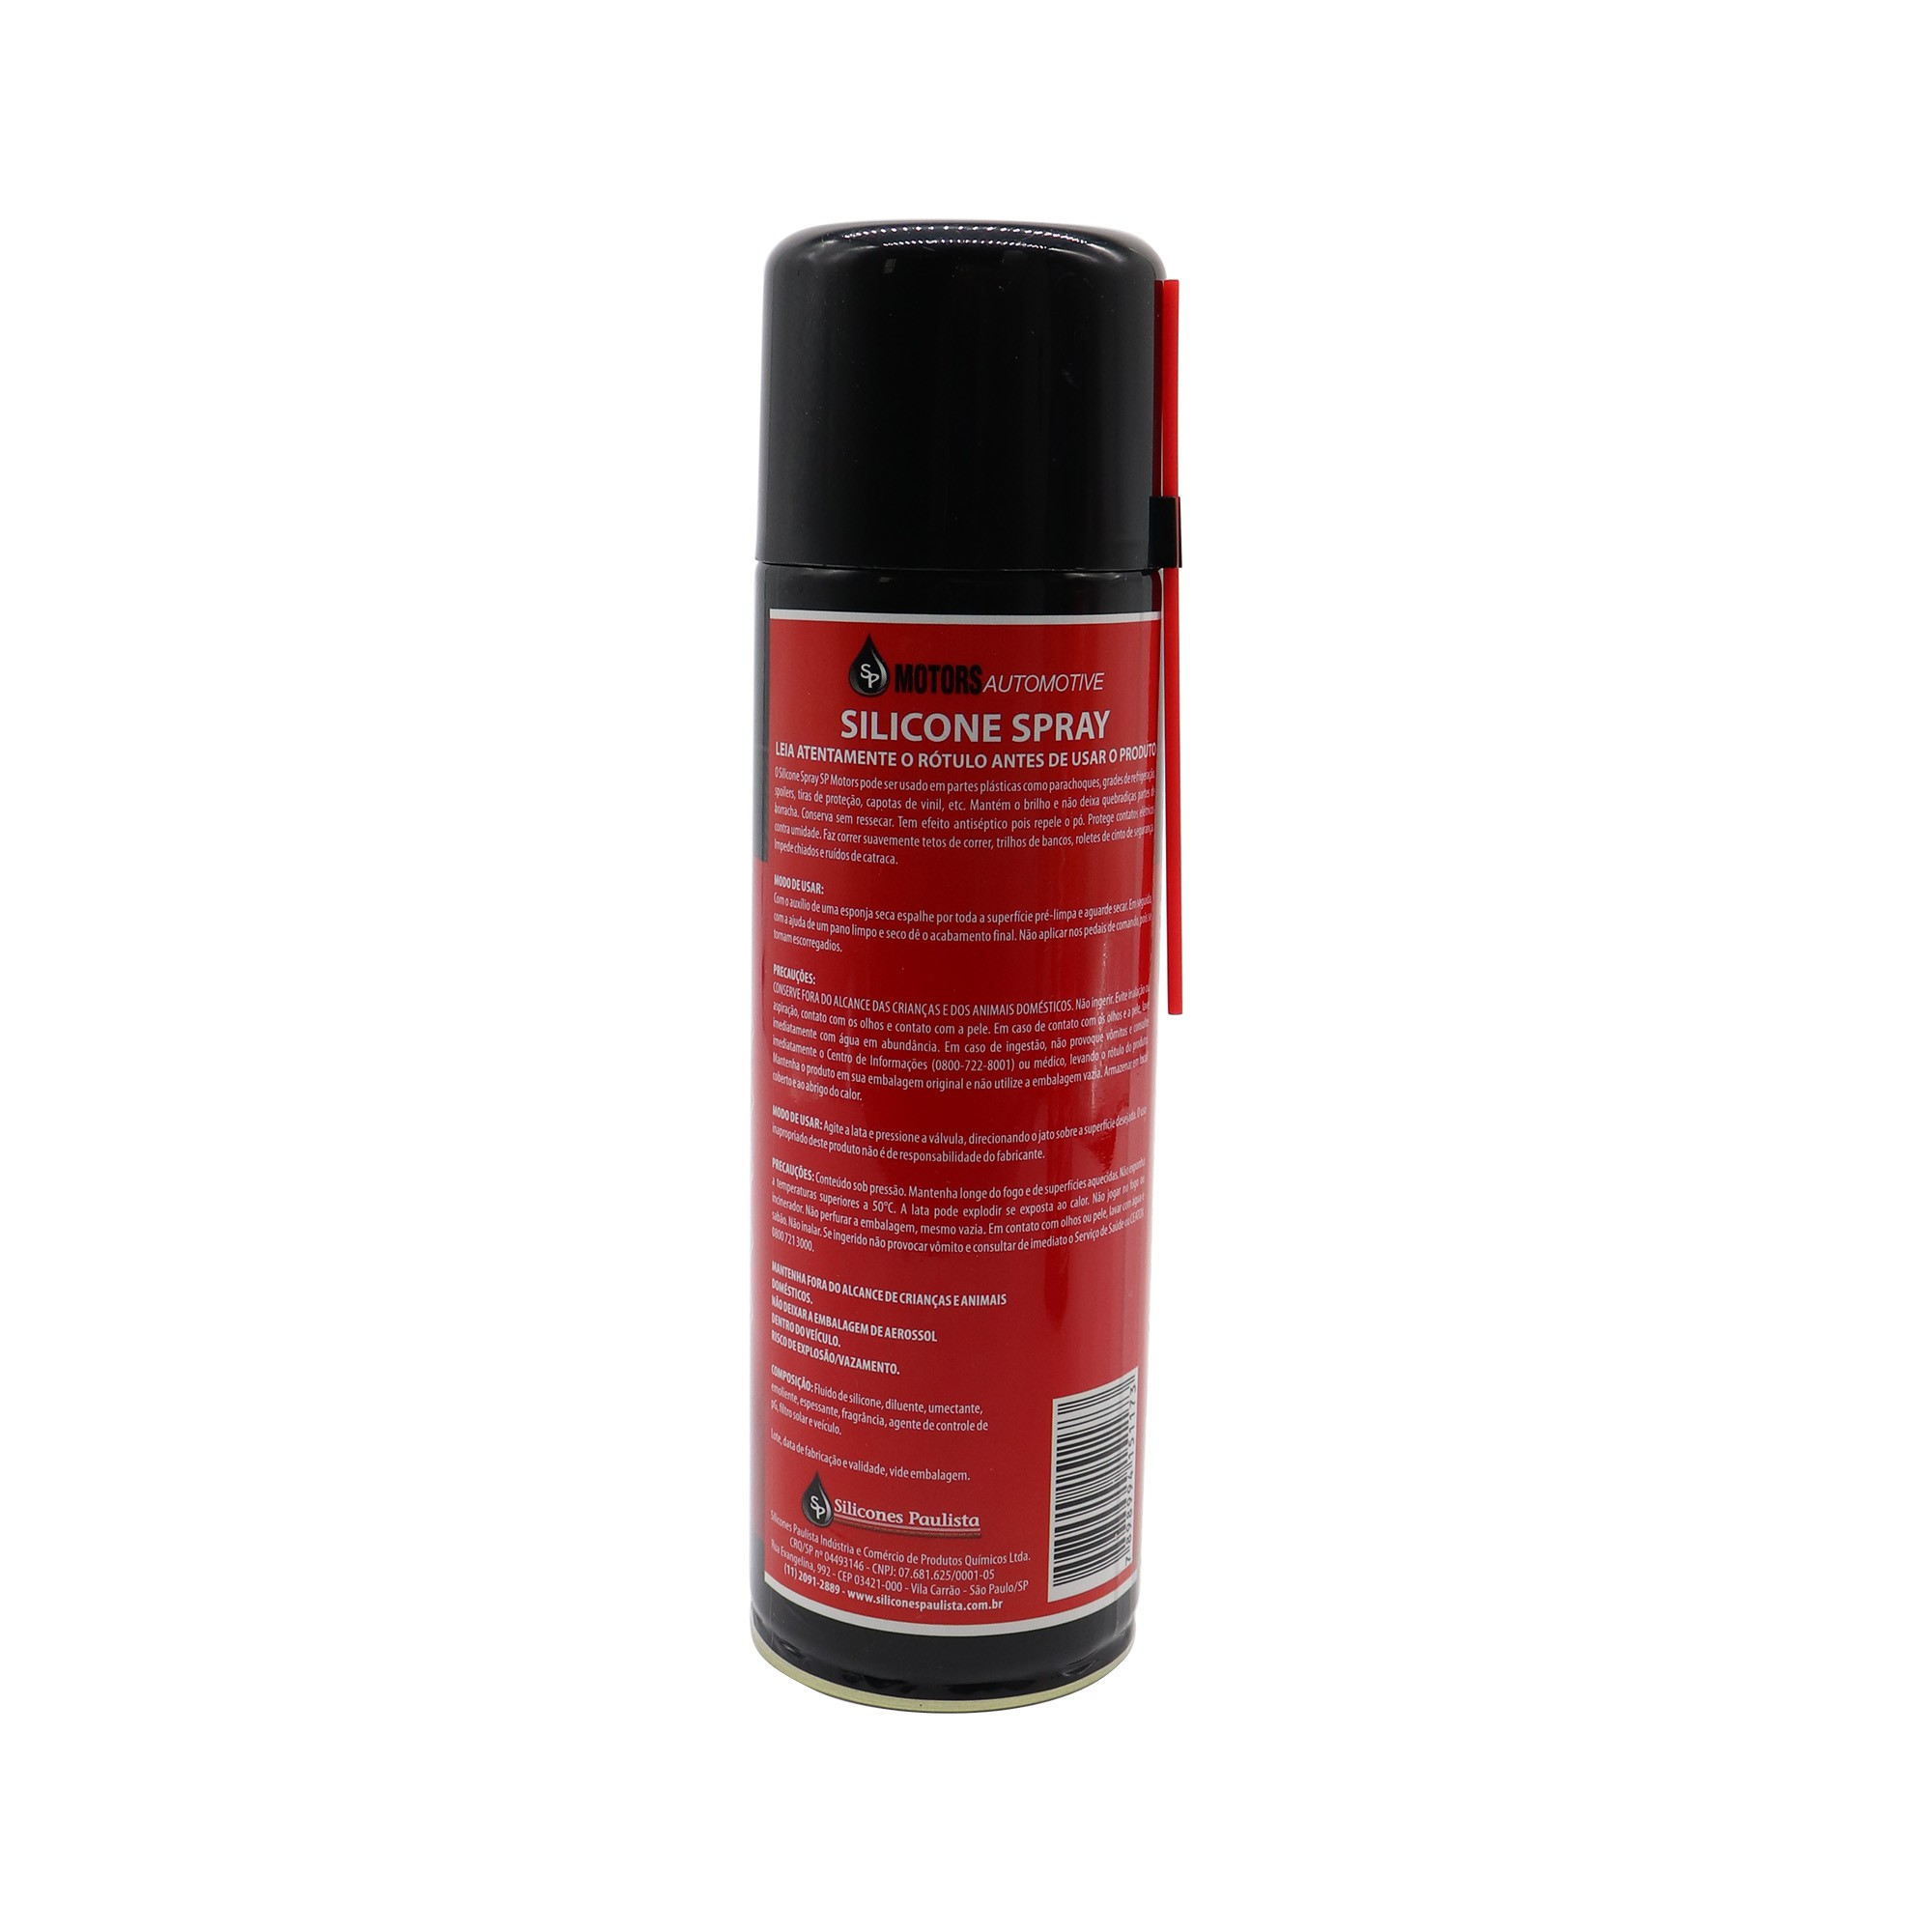 Spray de Silicone Automotivo 300ml / 180g